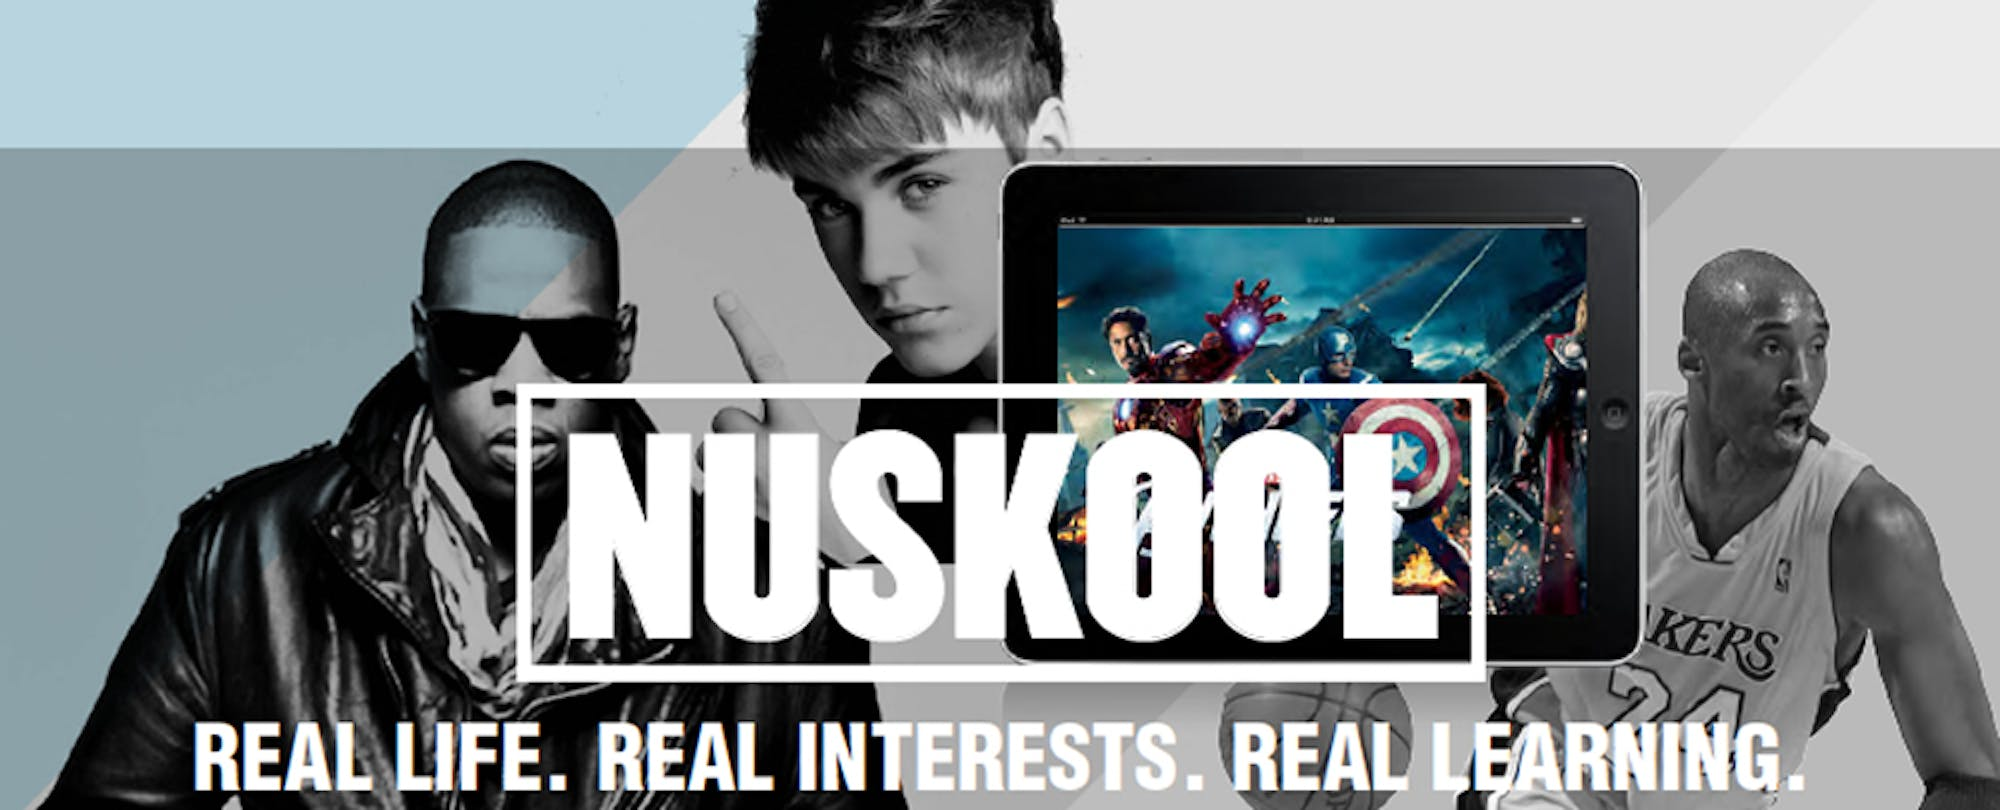 NuSkool's Abran Maldonado 'Drops the Mic' on Learning From Pop Culture